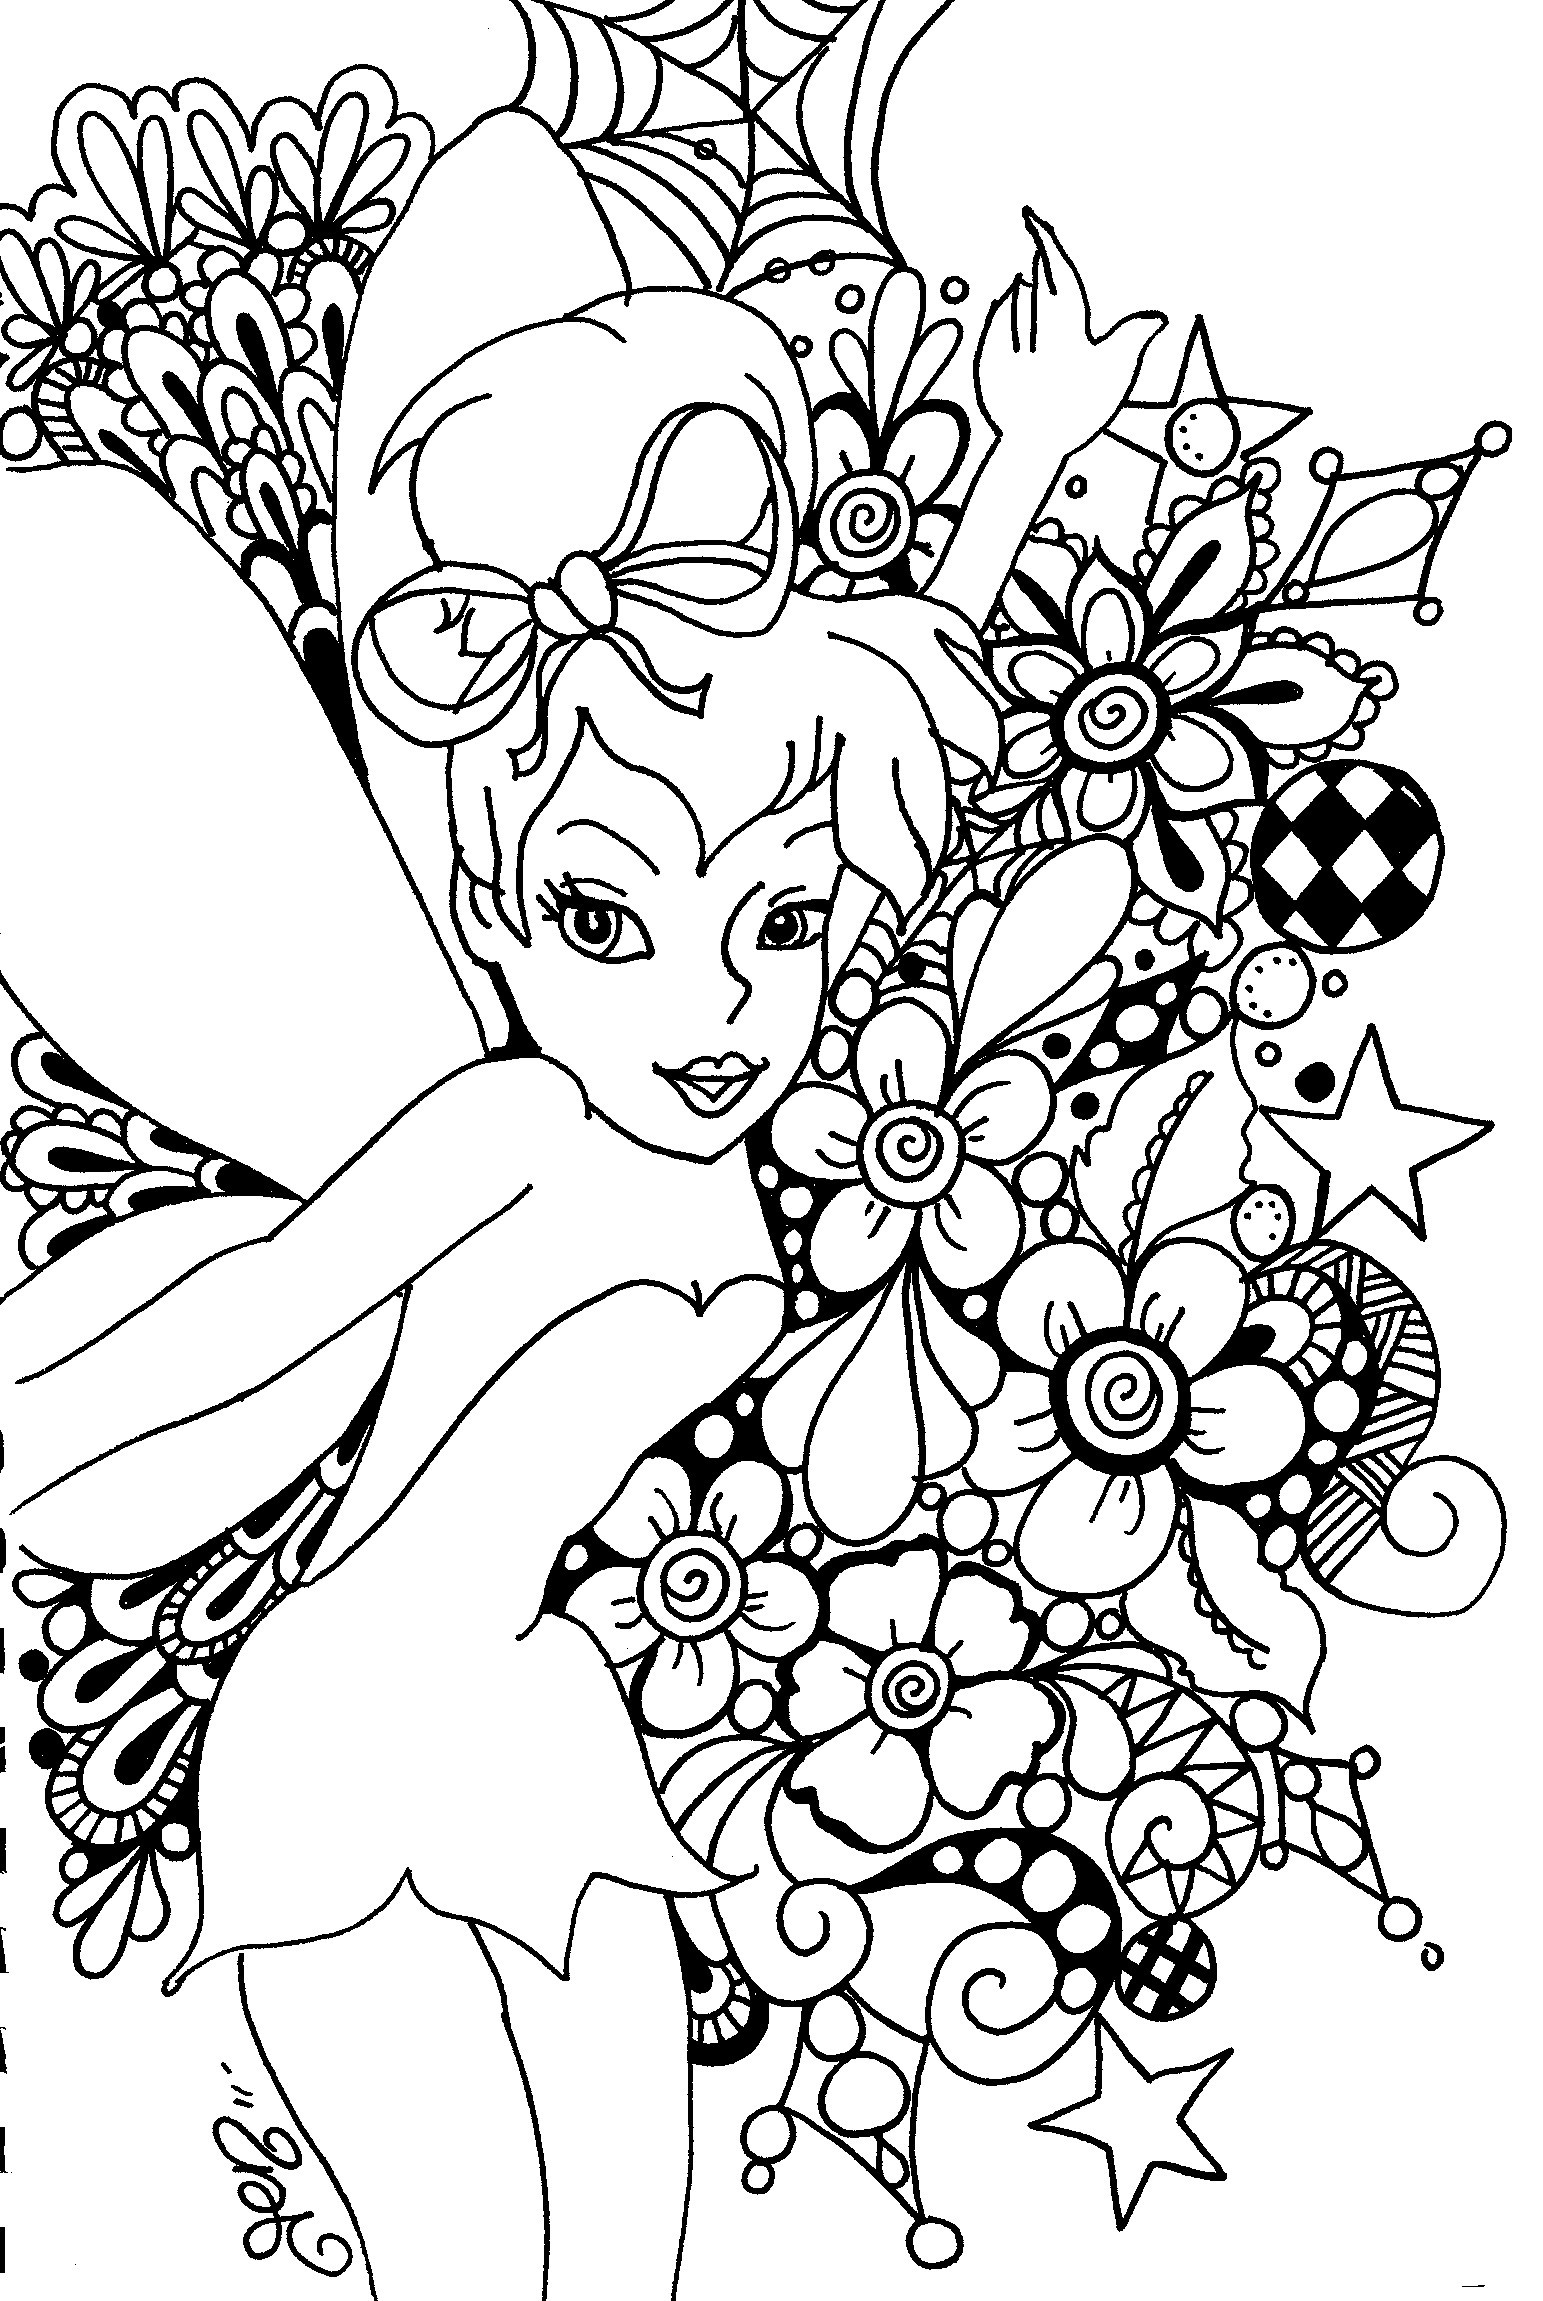 1543x2301 Coloring Pages To Color Online For Kids Lovely Coloring Pages Line